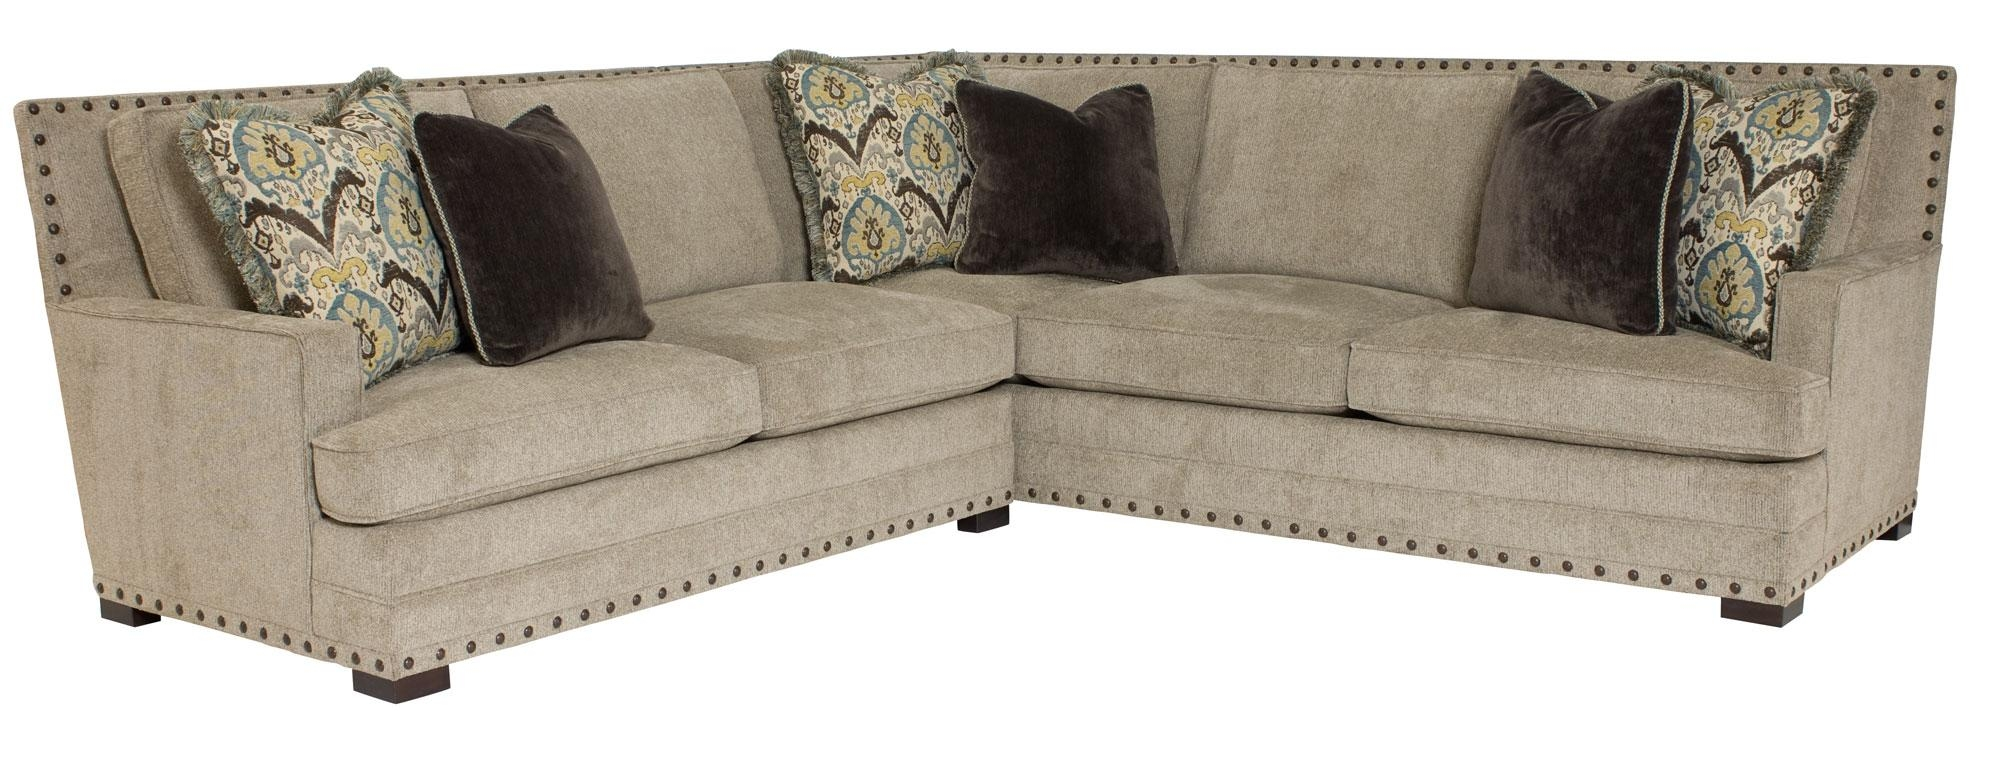 Sectionals | Bernhardt Pertaining To Bernhardt Brae Sofas (Image 15 of 20)